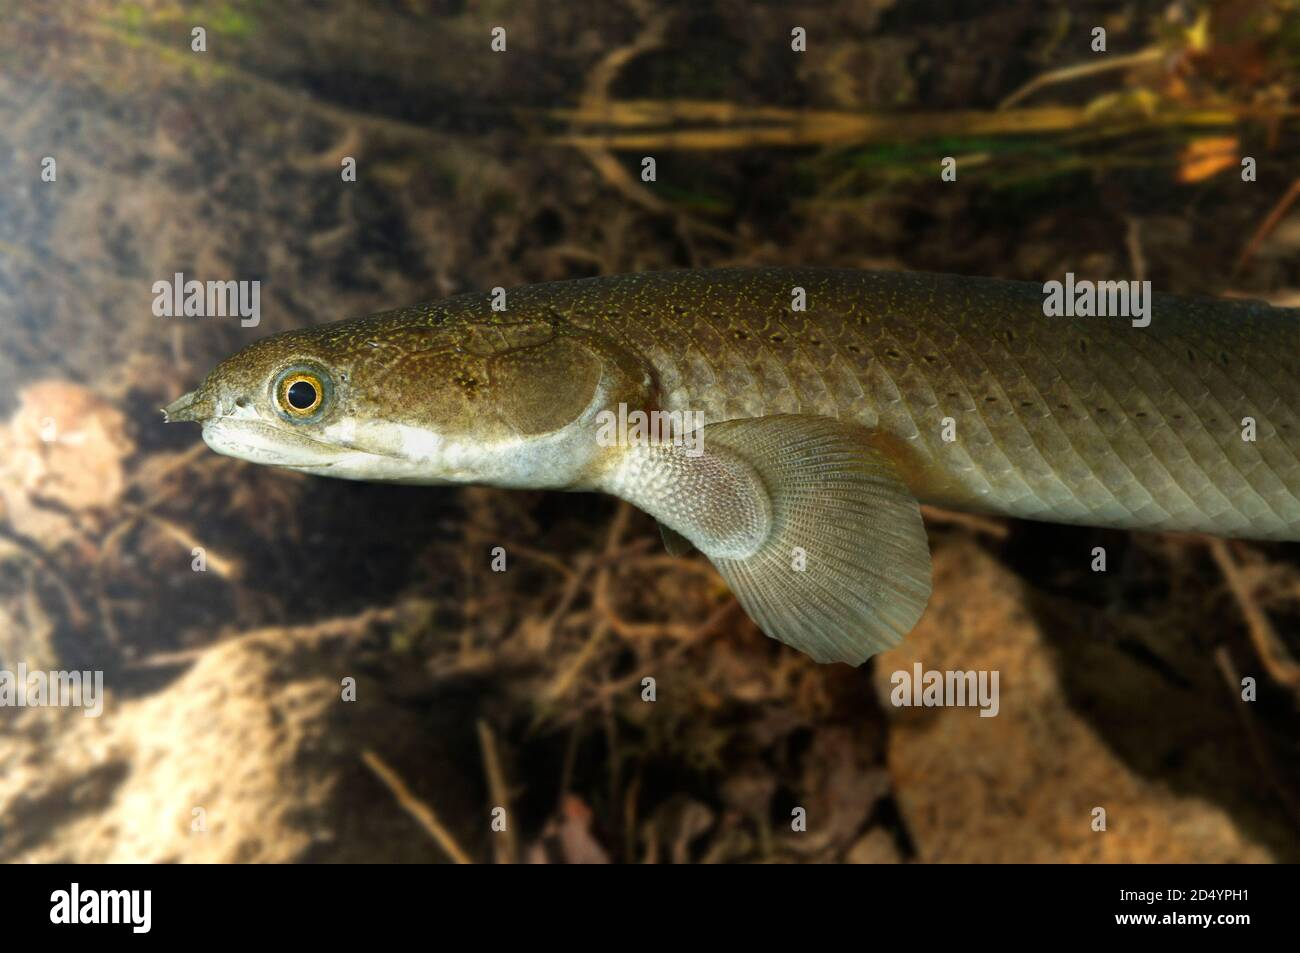 Polypterus Fish High Resolution Stock Photography And Images Alamy